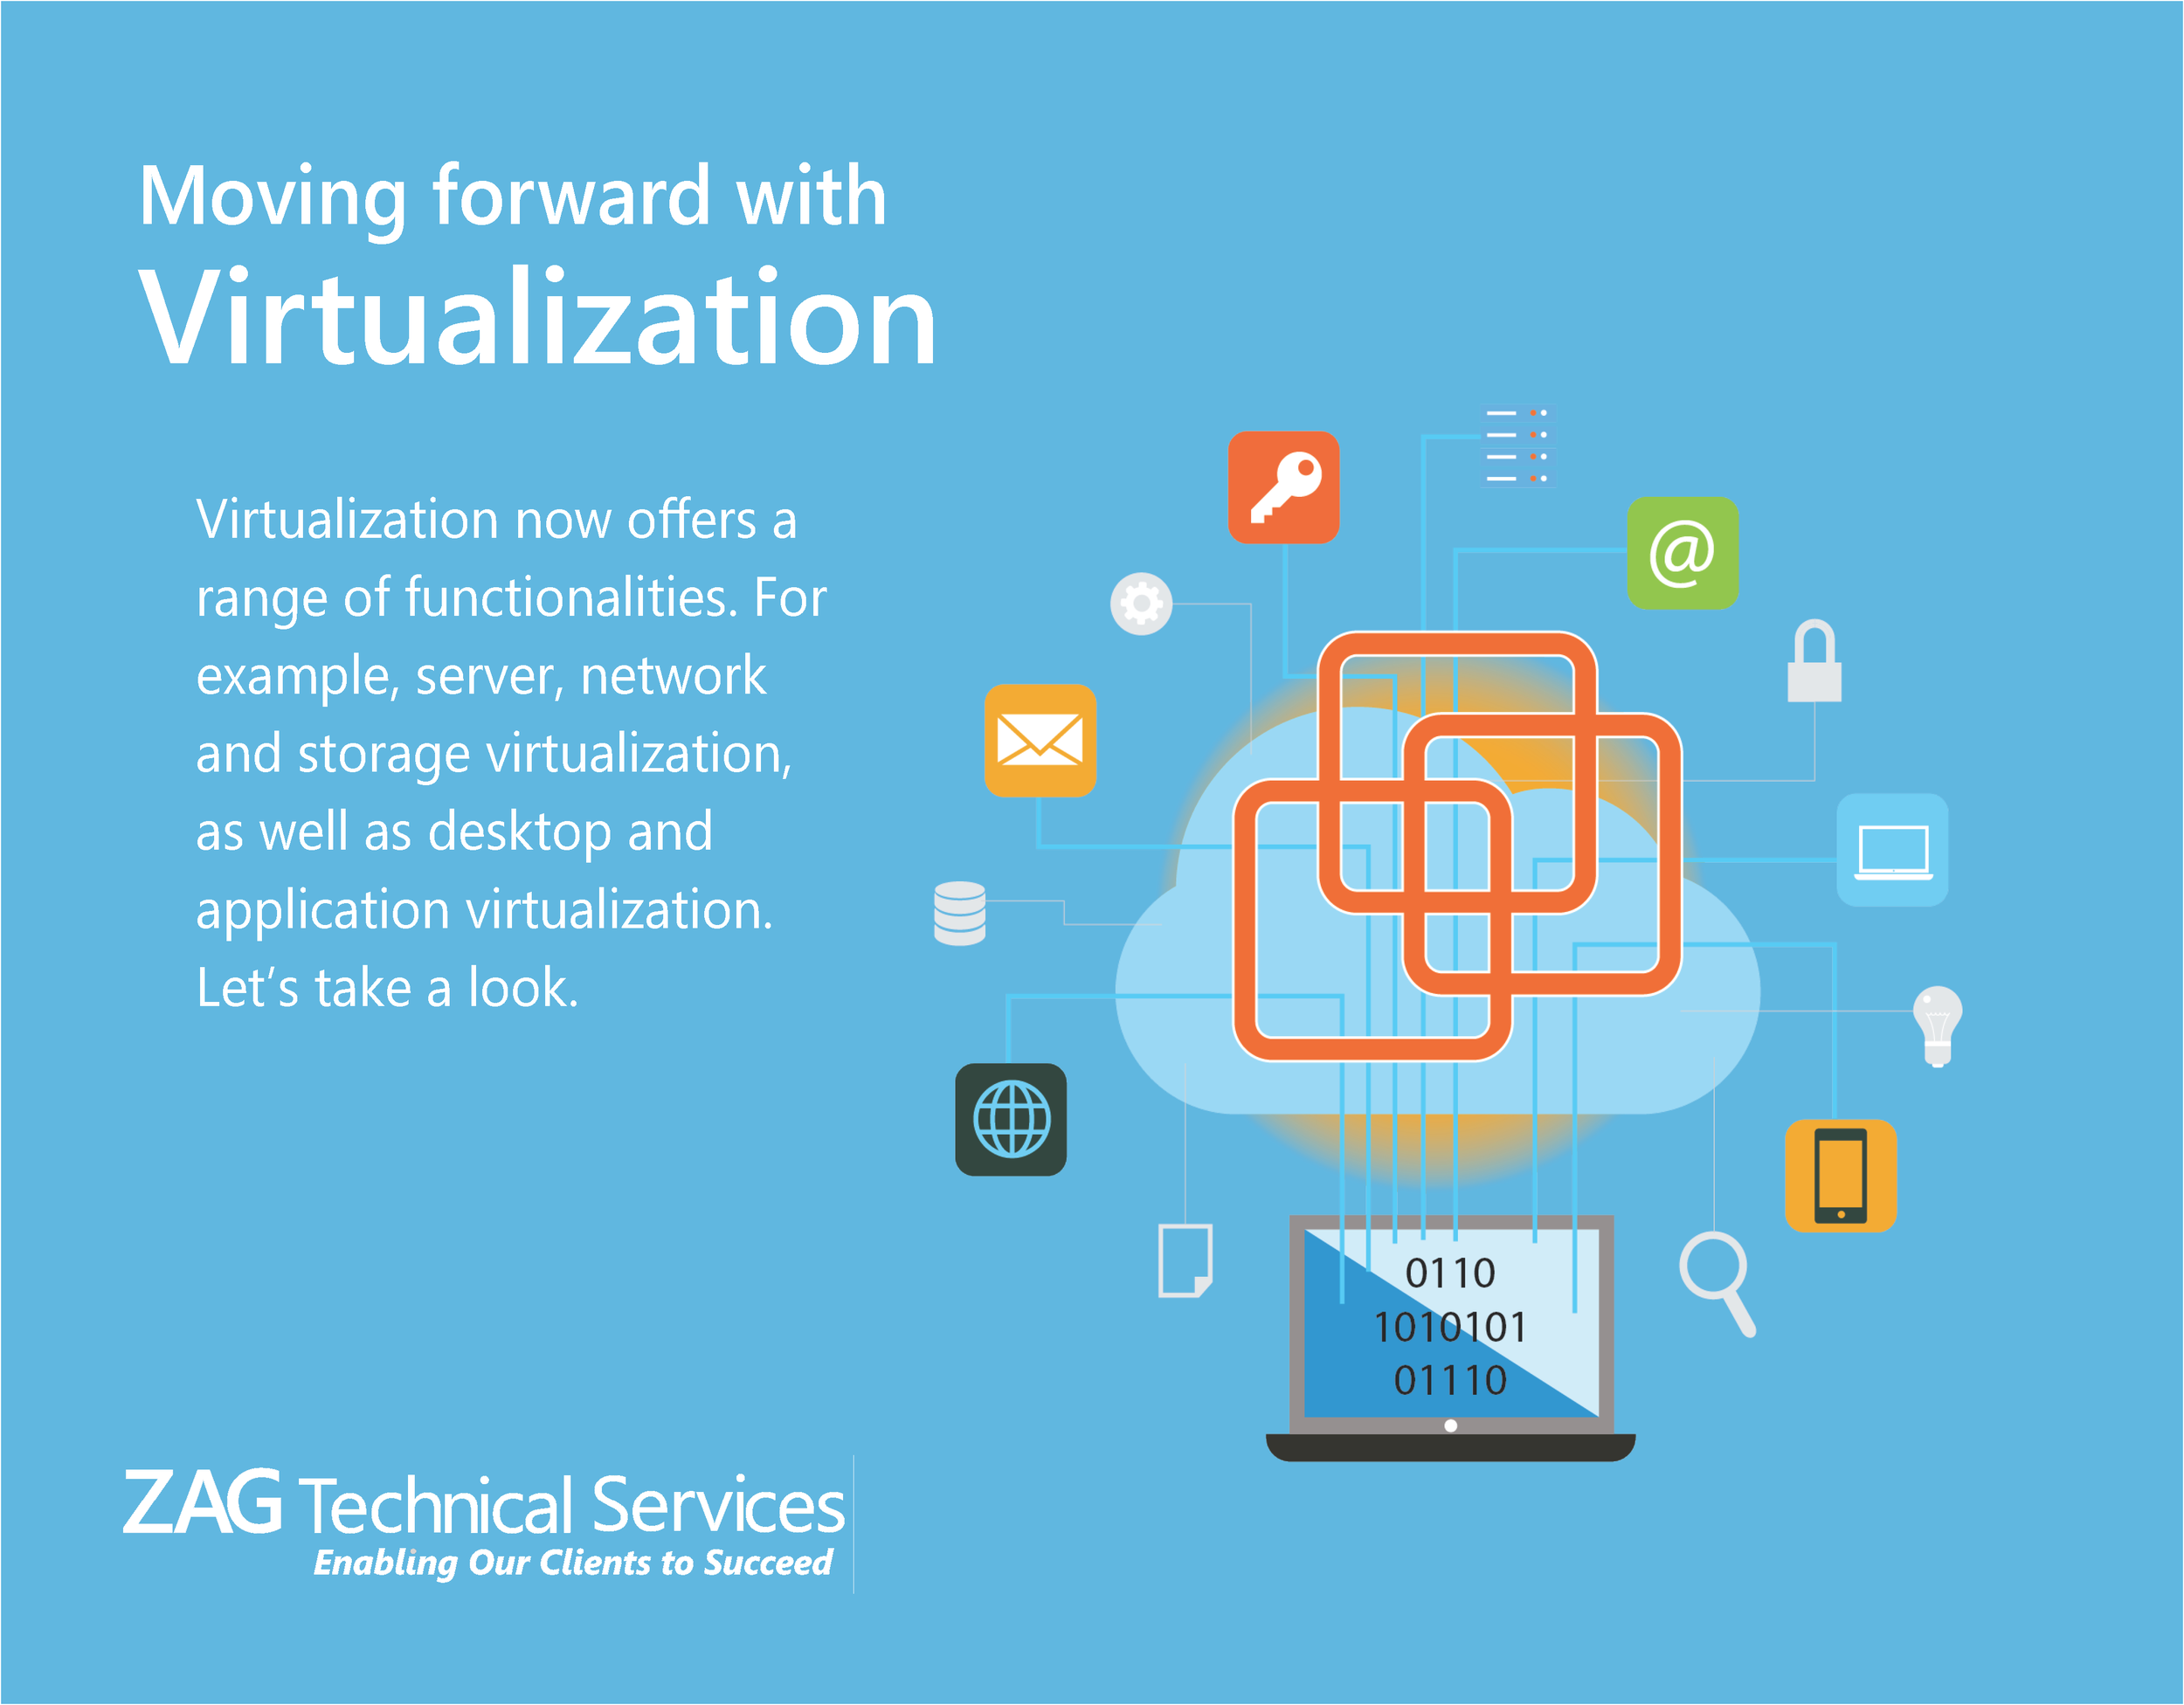 Virtualization offers a range of functionalities